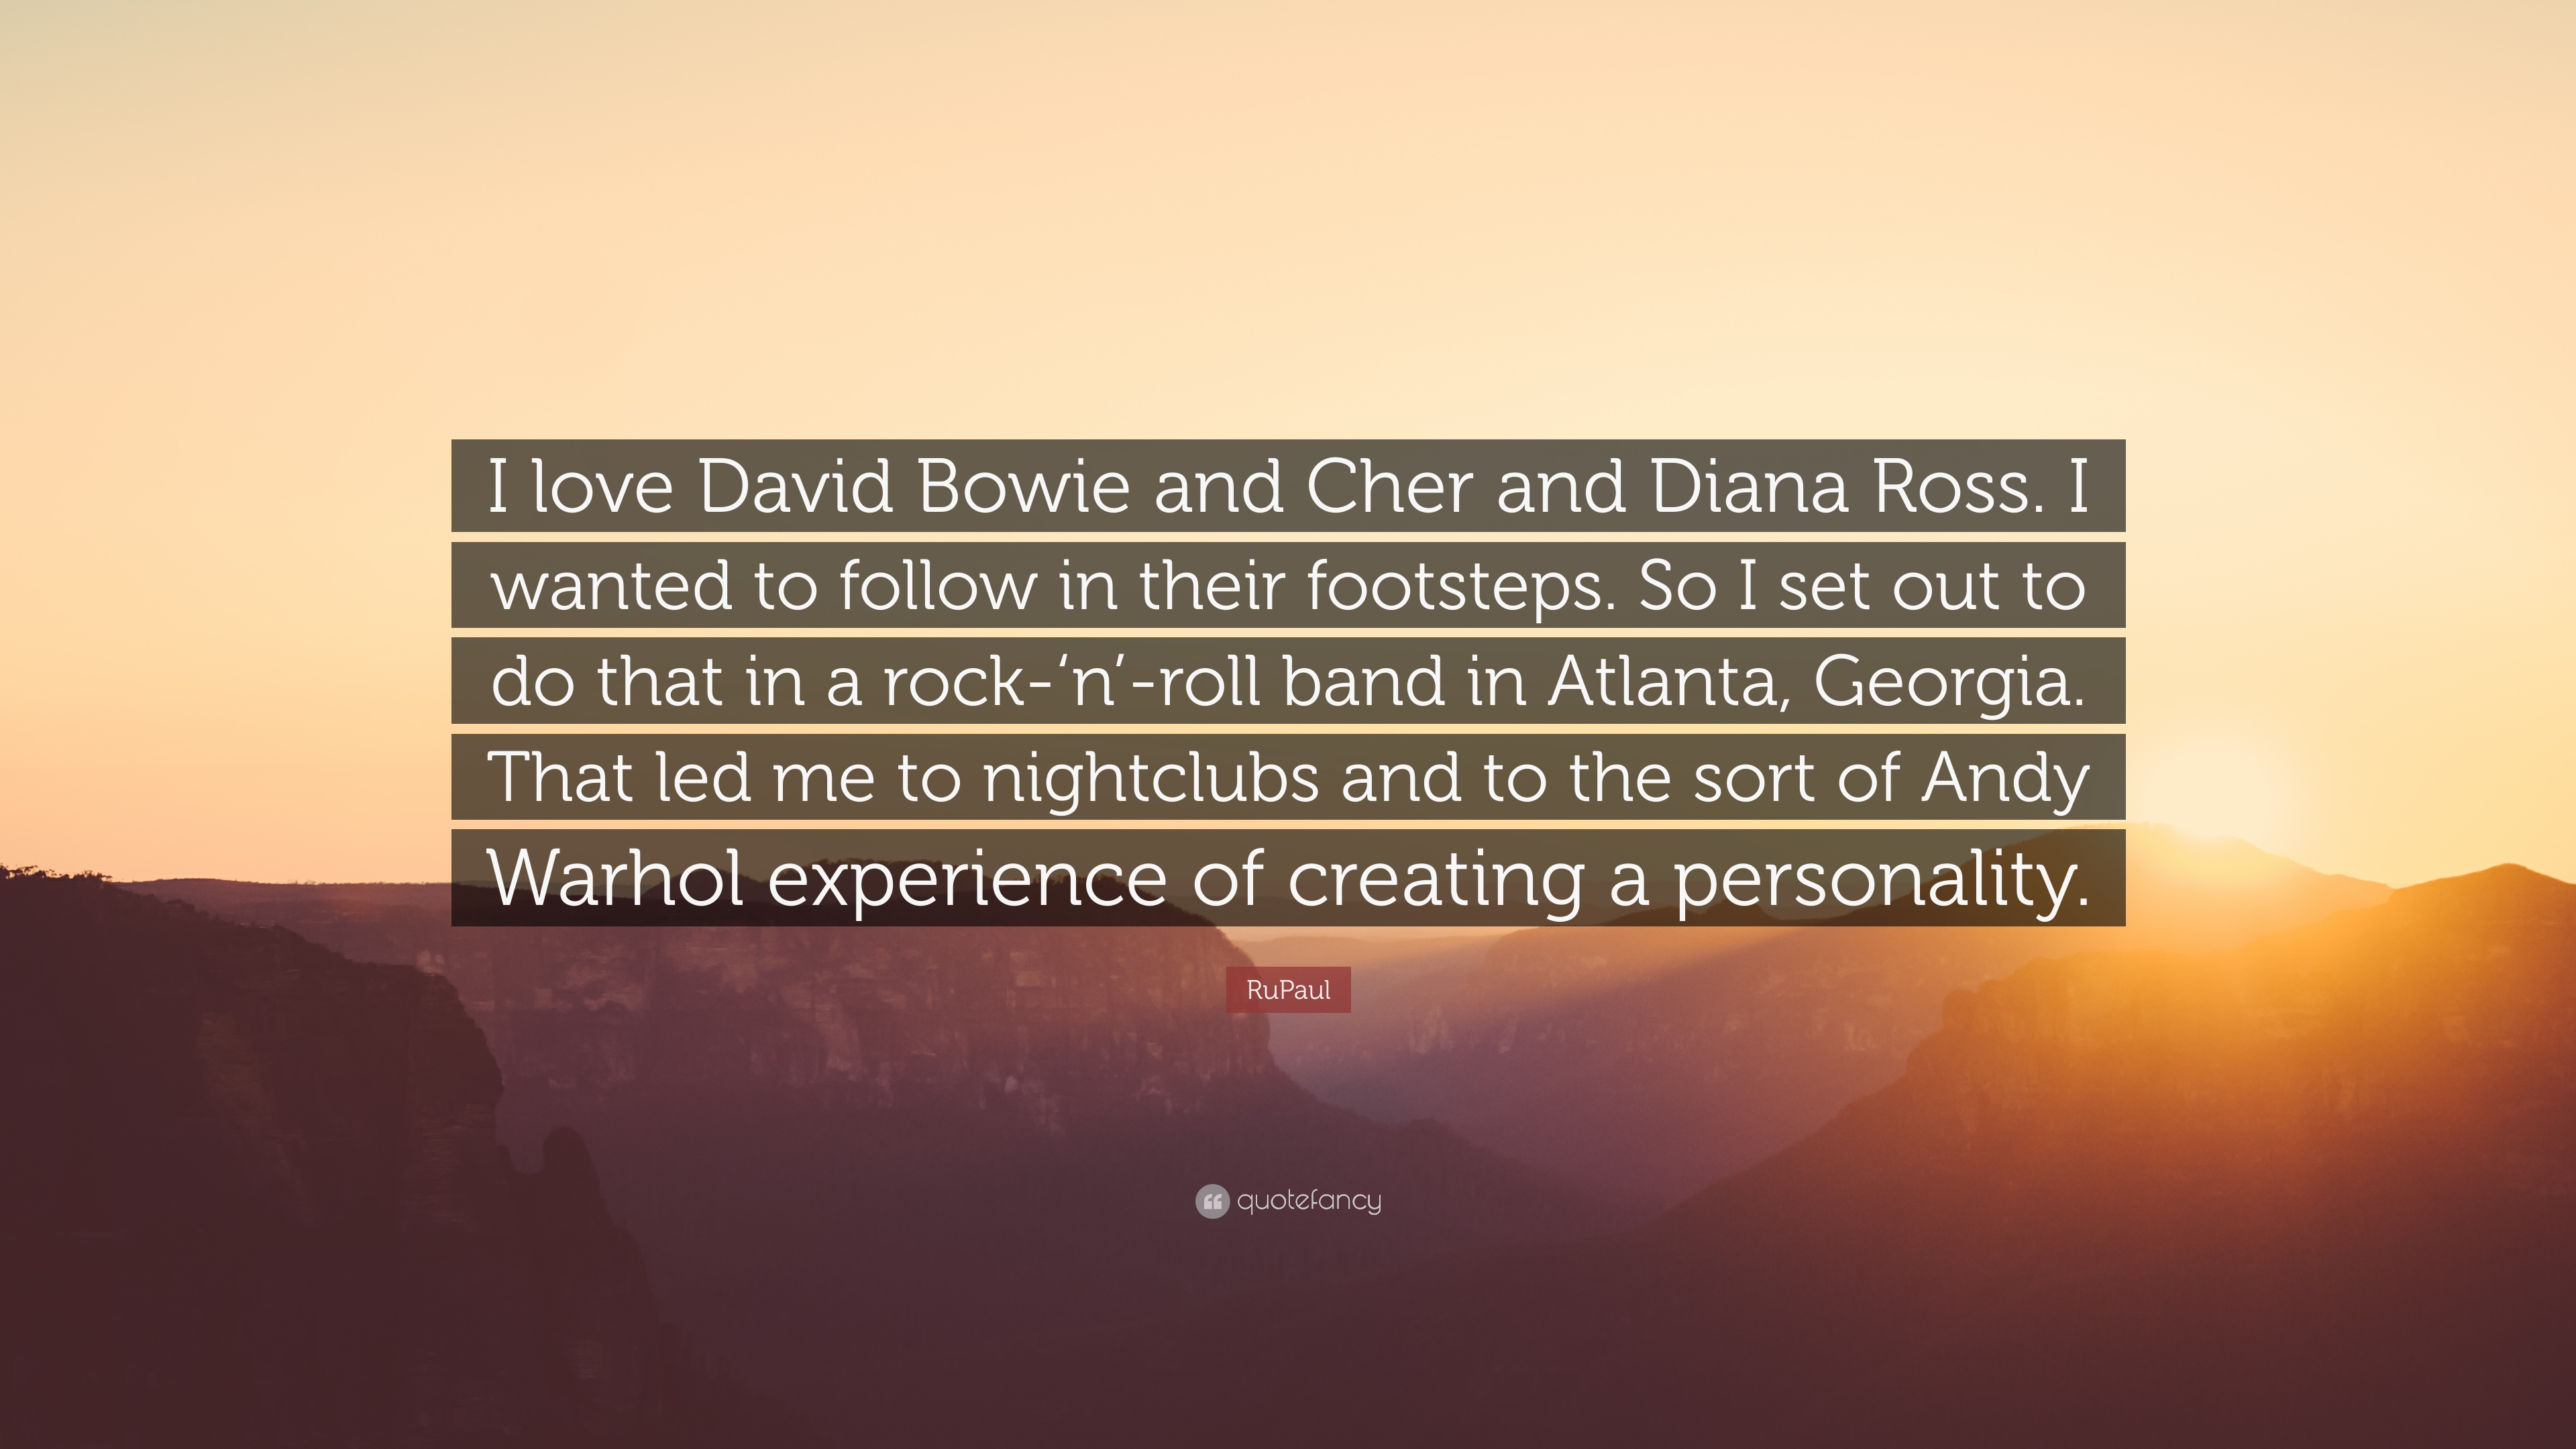 rupaul quote i love david bowie and cher and diana ross i wanted